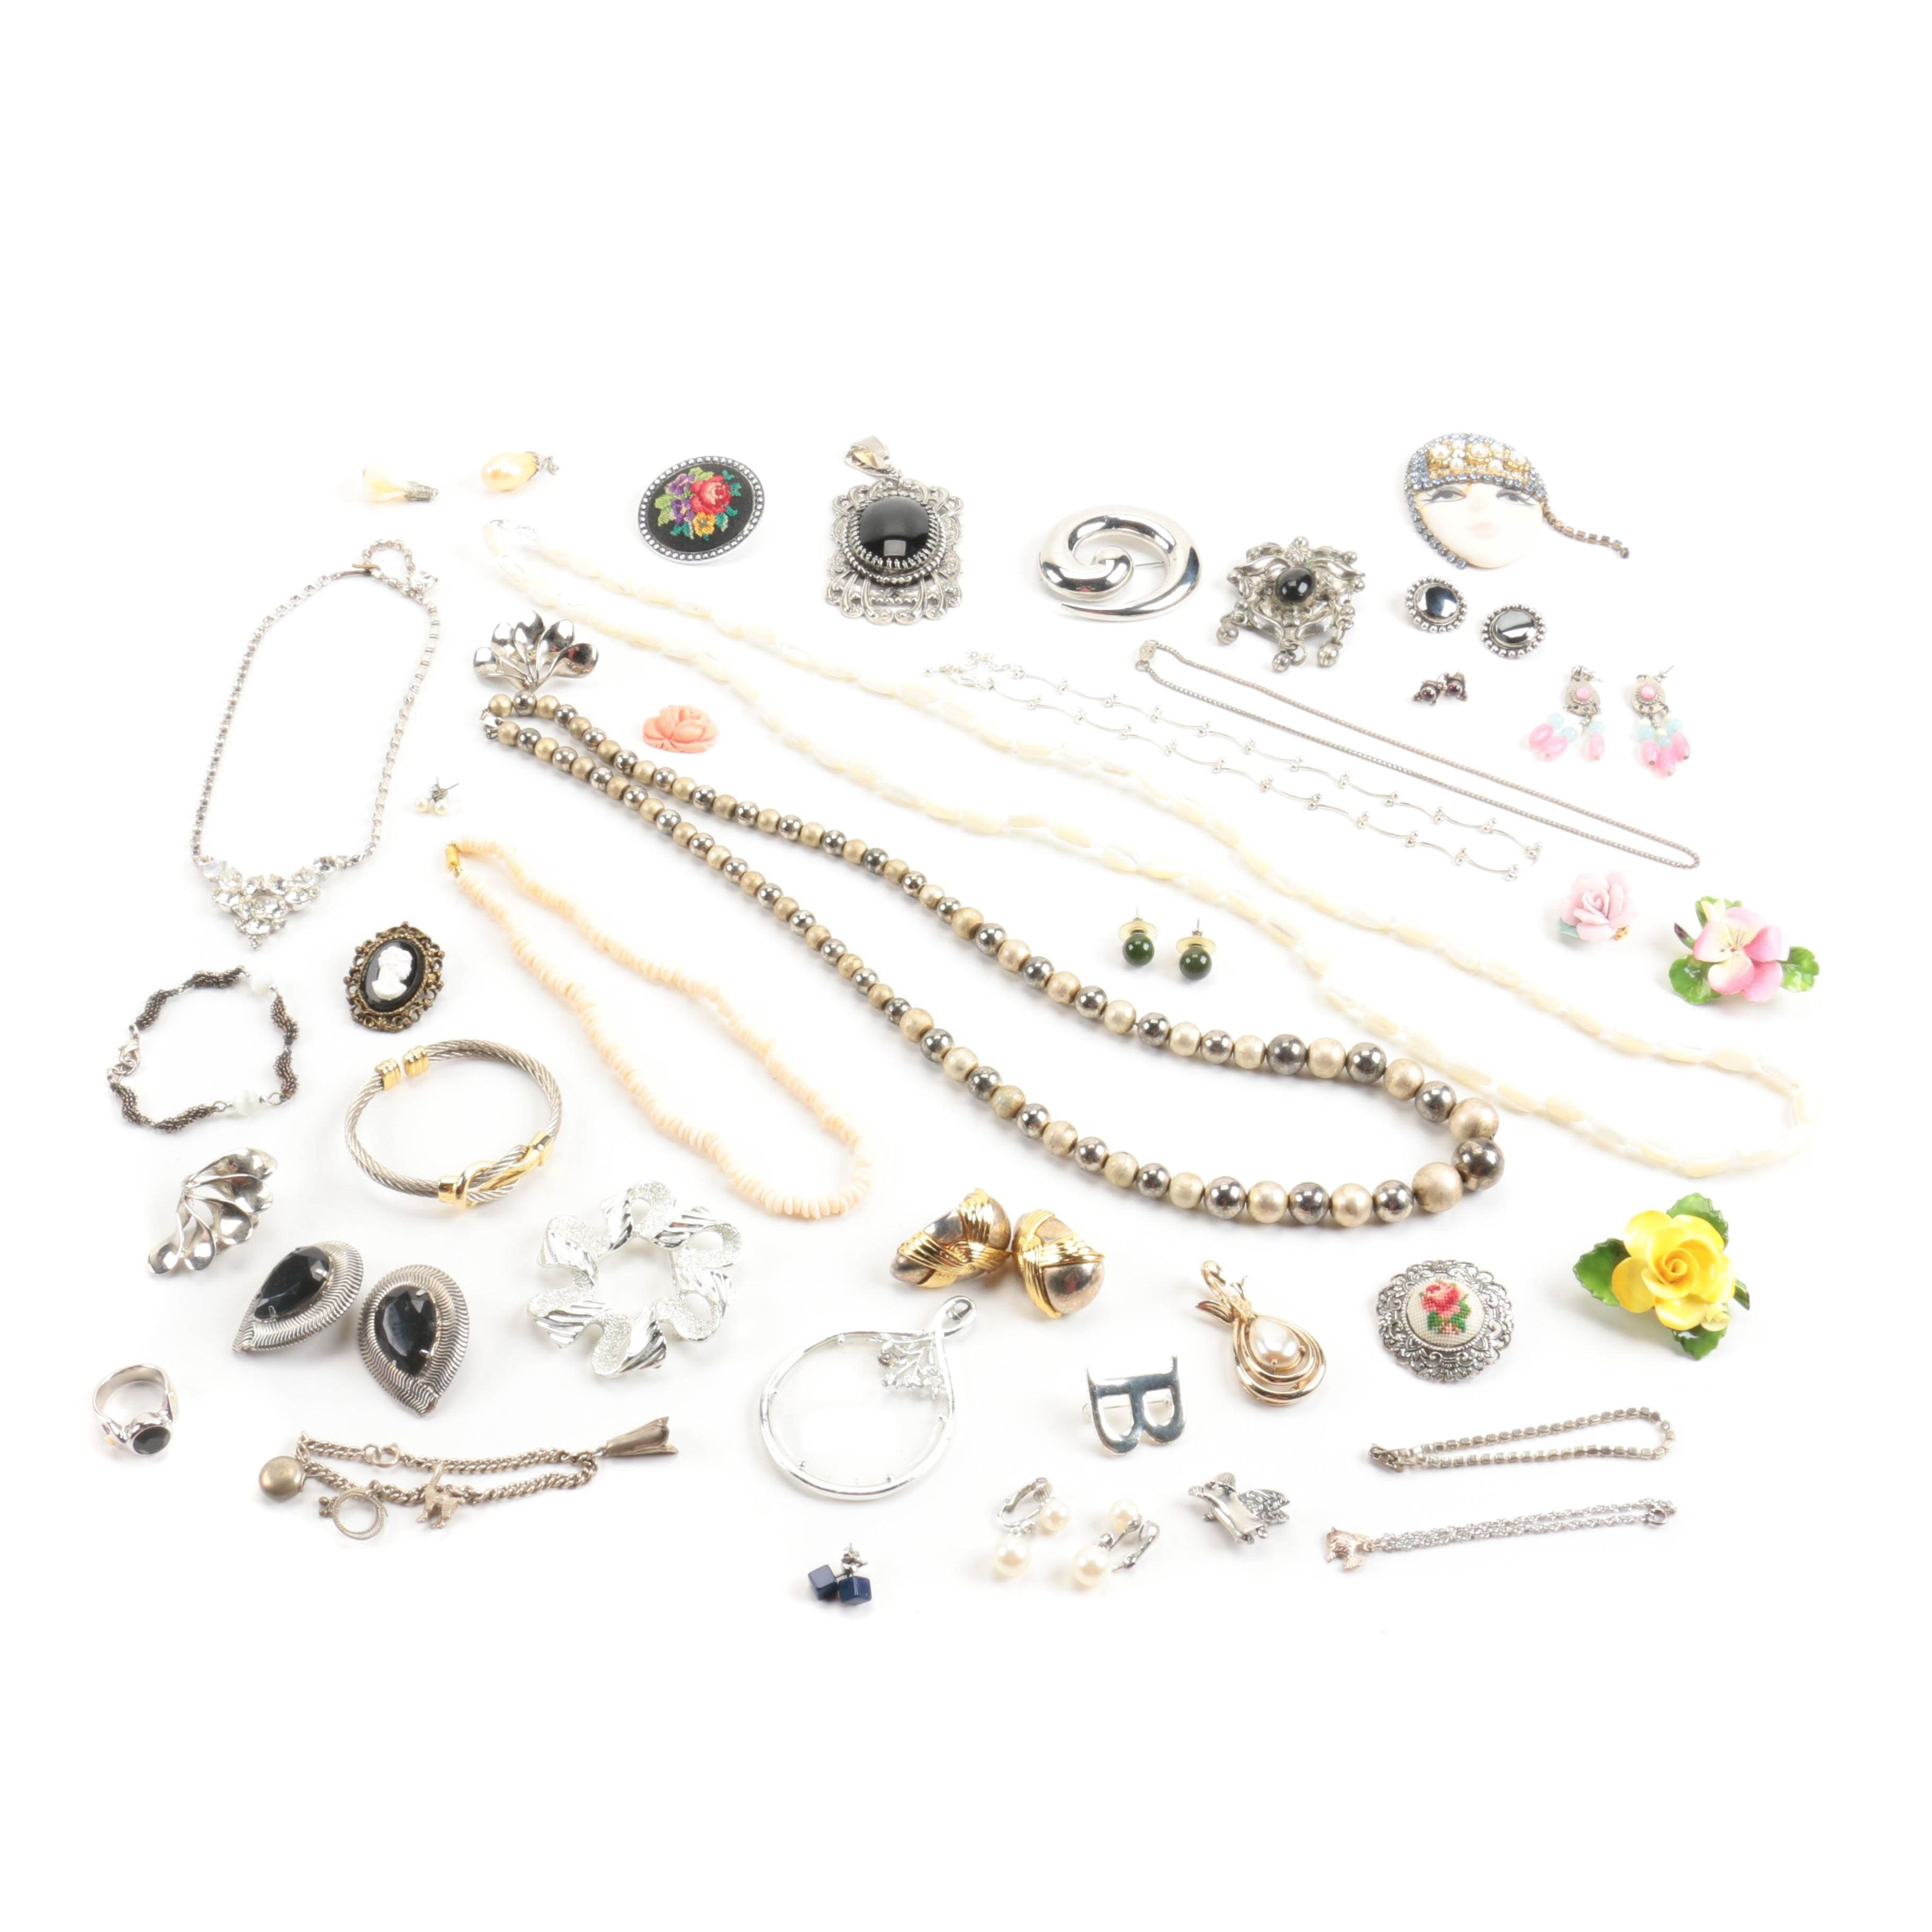 Assortment of Costume Jewelry Including Bogoff and Staffordshire